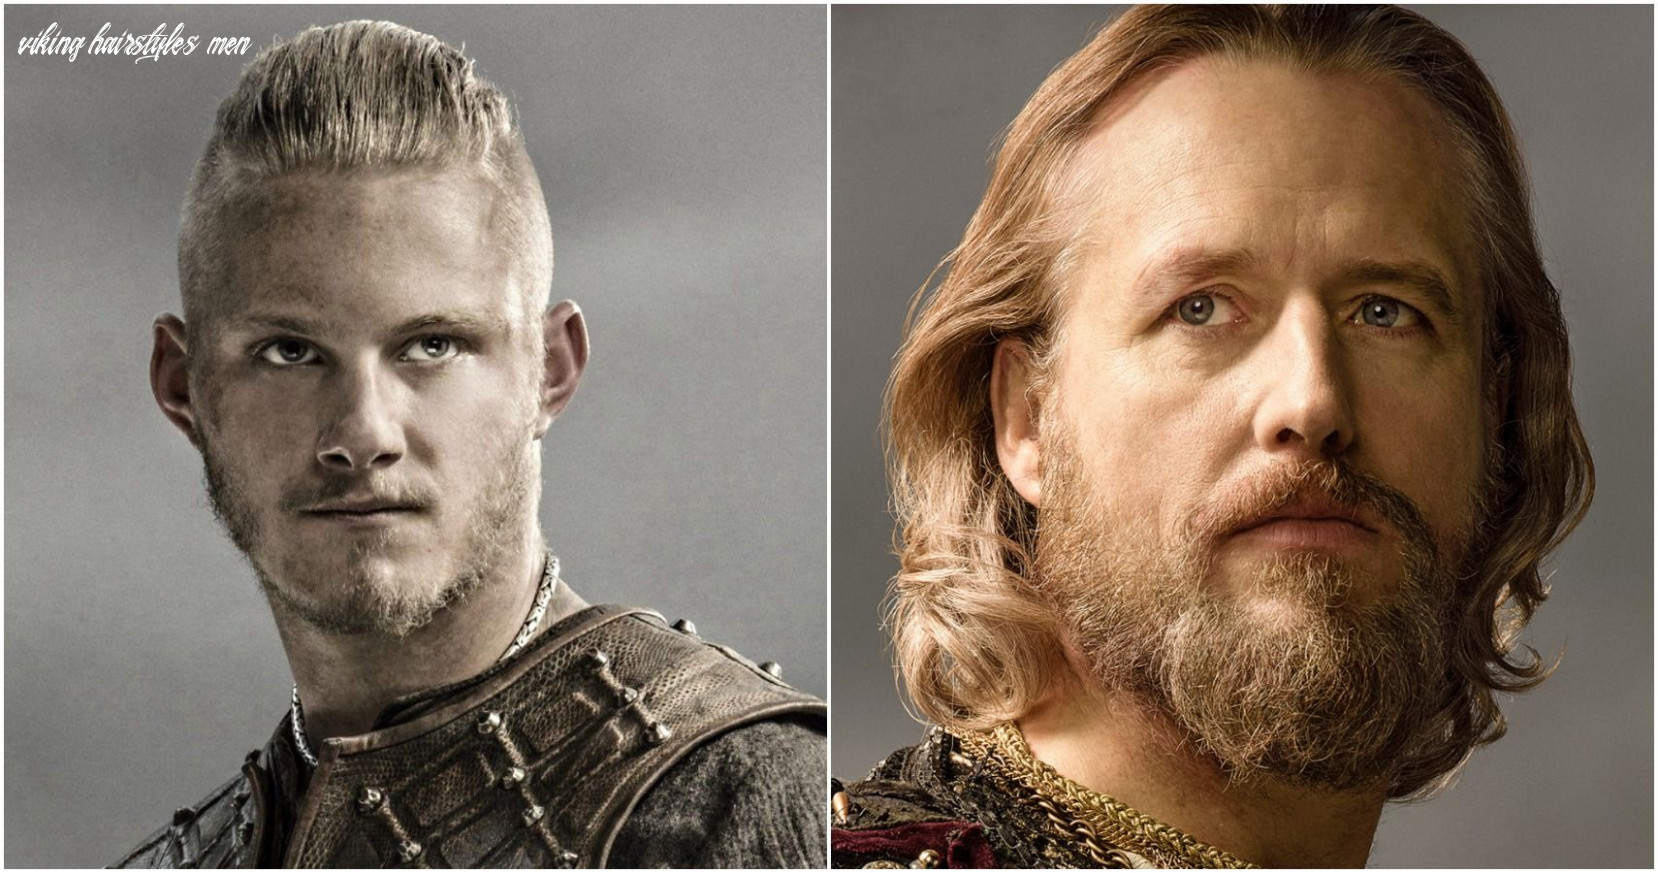 Vikings: 10 Coolest Hairstyles For Men | ScreenRant